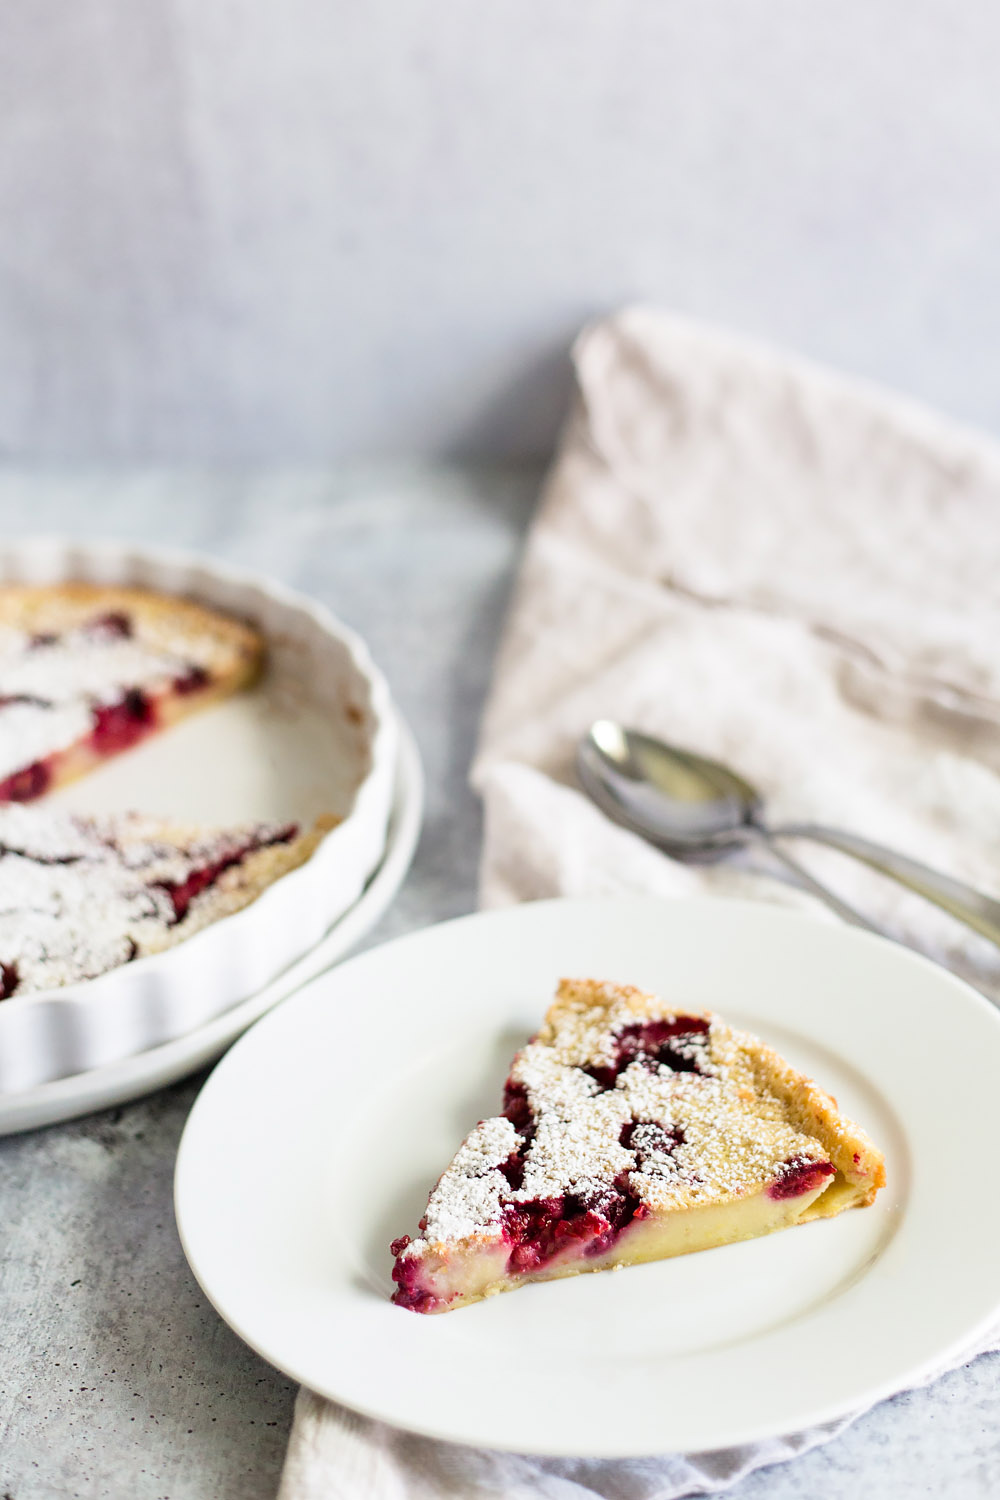 Raspberry Clafoutis on a plate